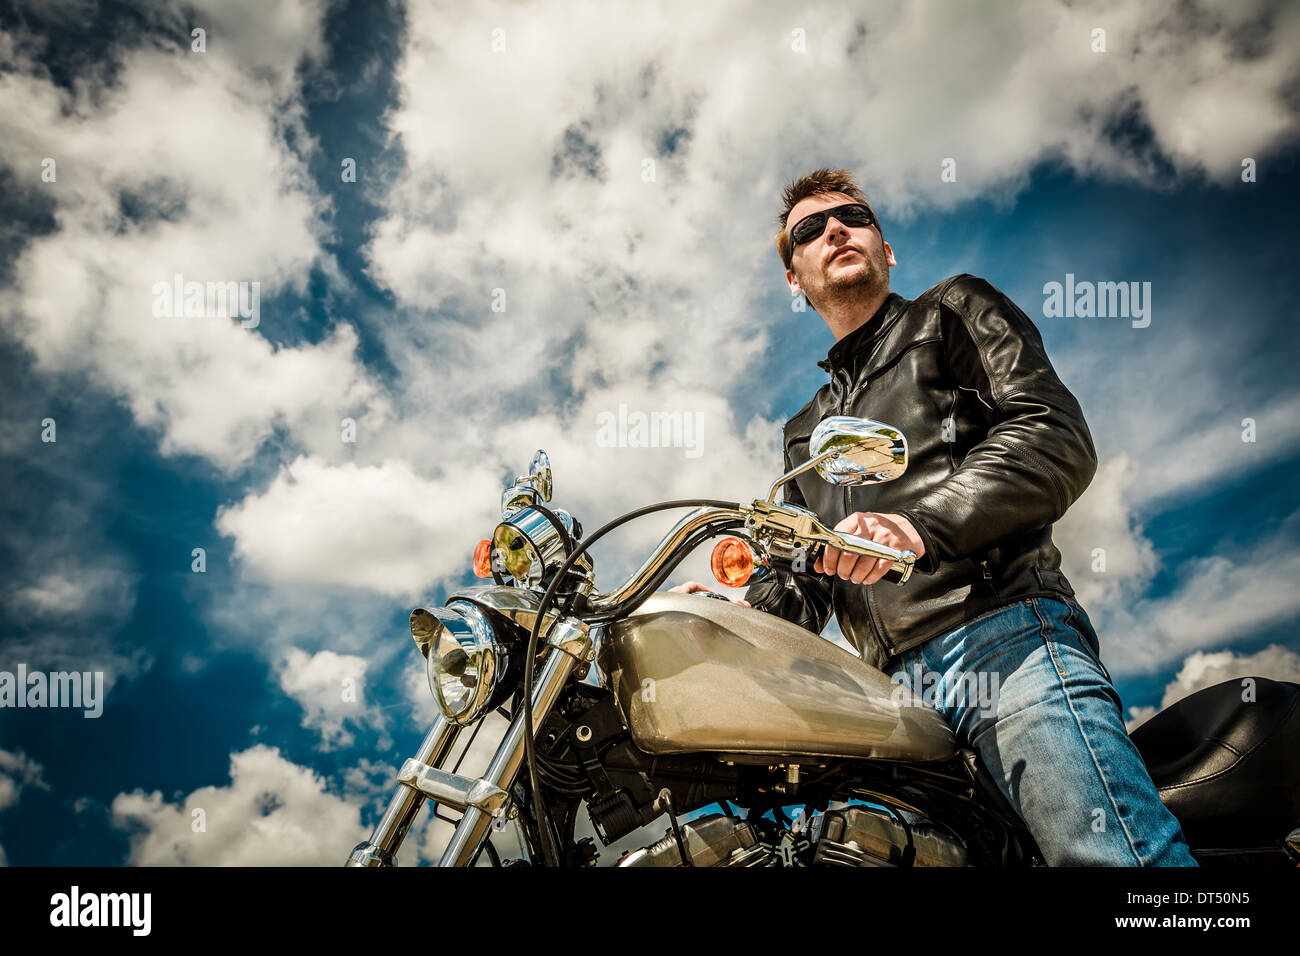 Biker man wearing a leather jacket and sunglasses sitting on his motorcycle looking at the sunset. - Stock Image